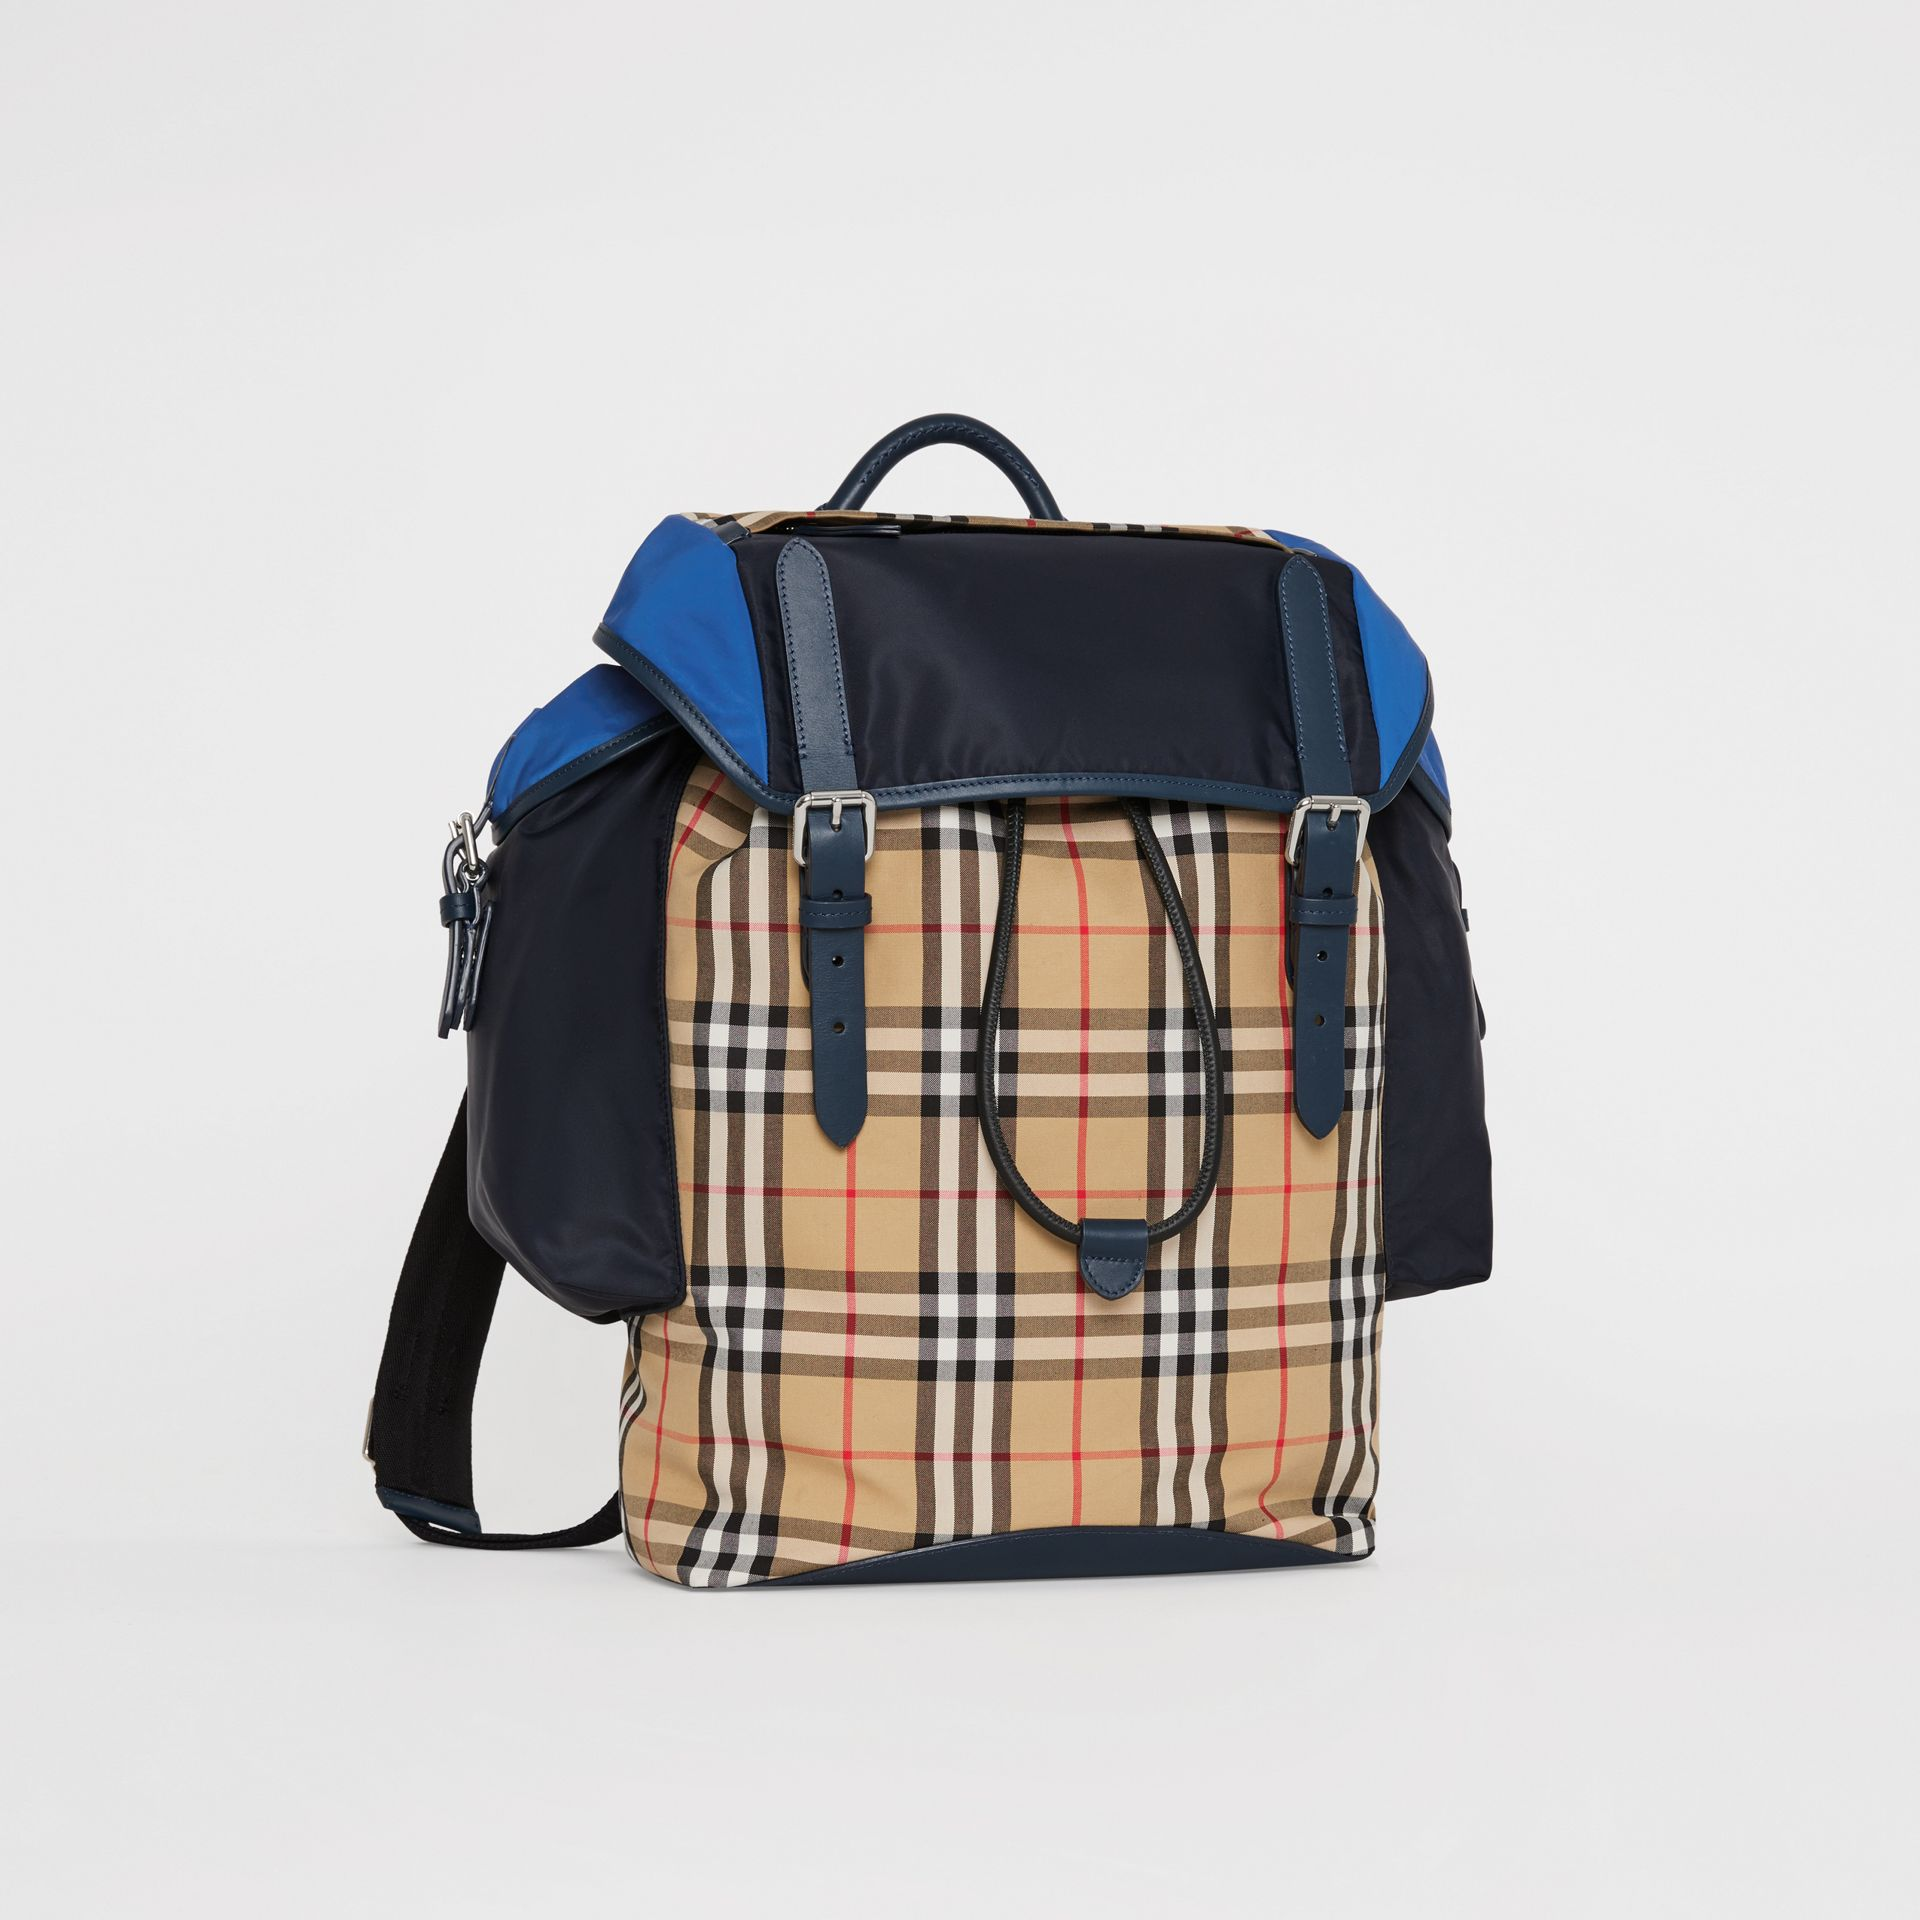 Sac à dos en cuir à motif Vintage check color-block (Marine) - Homme | Burberry - photo de la galerie 6